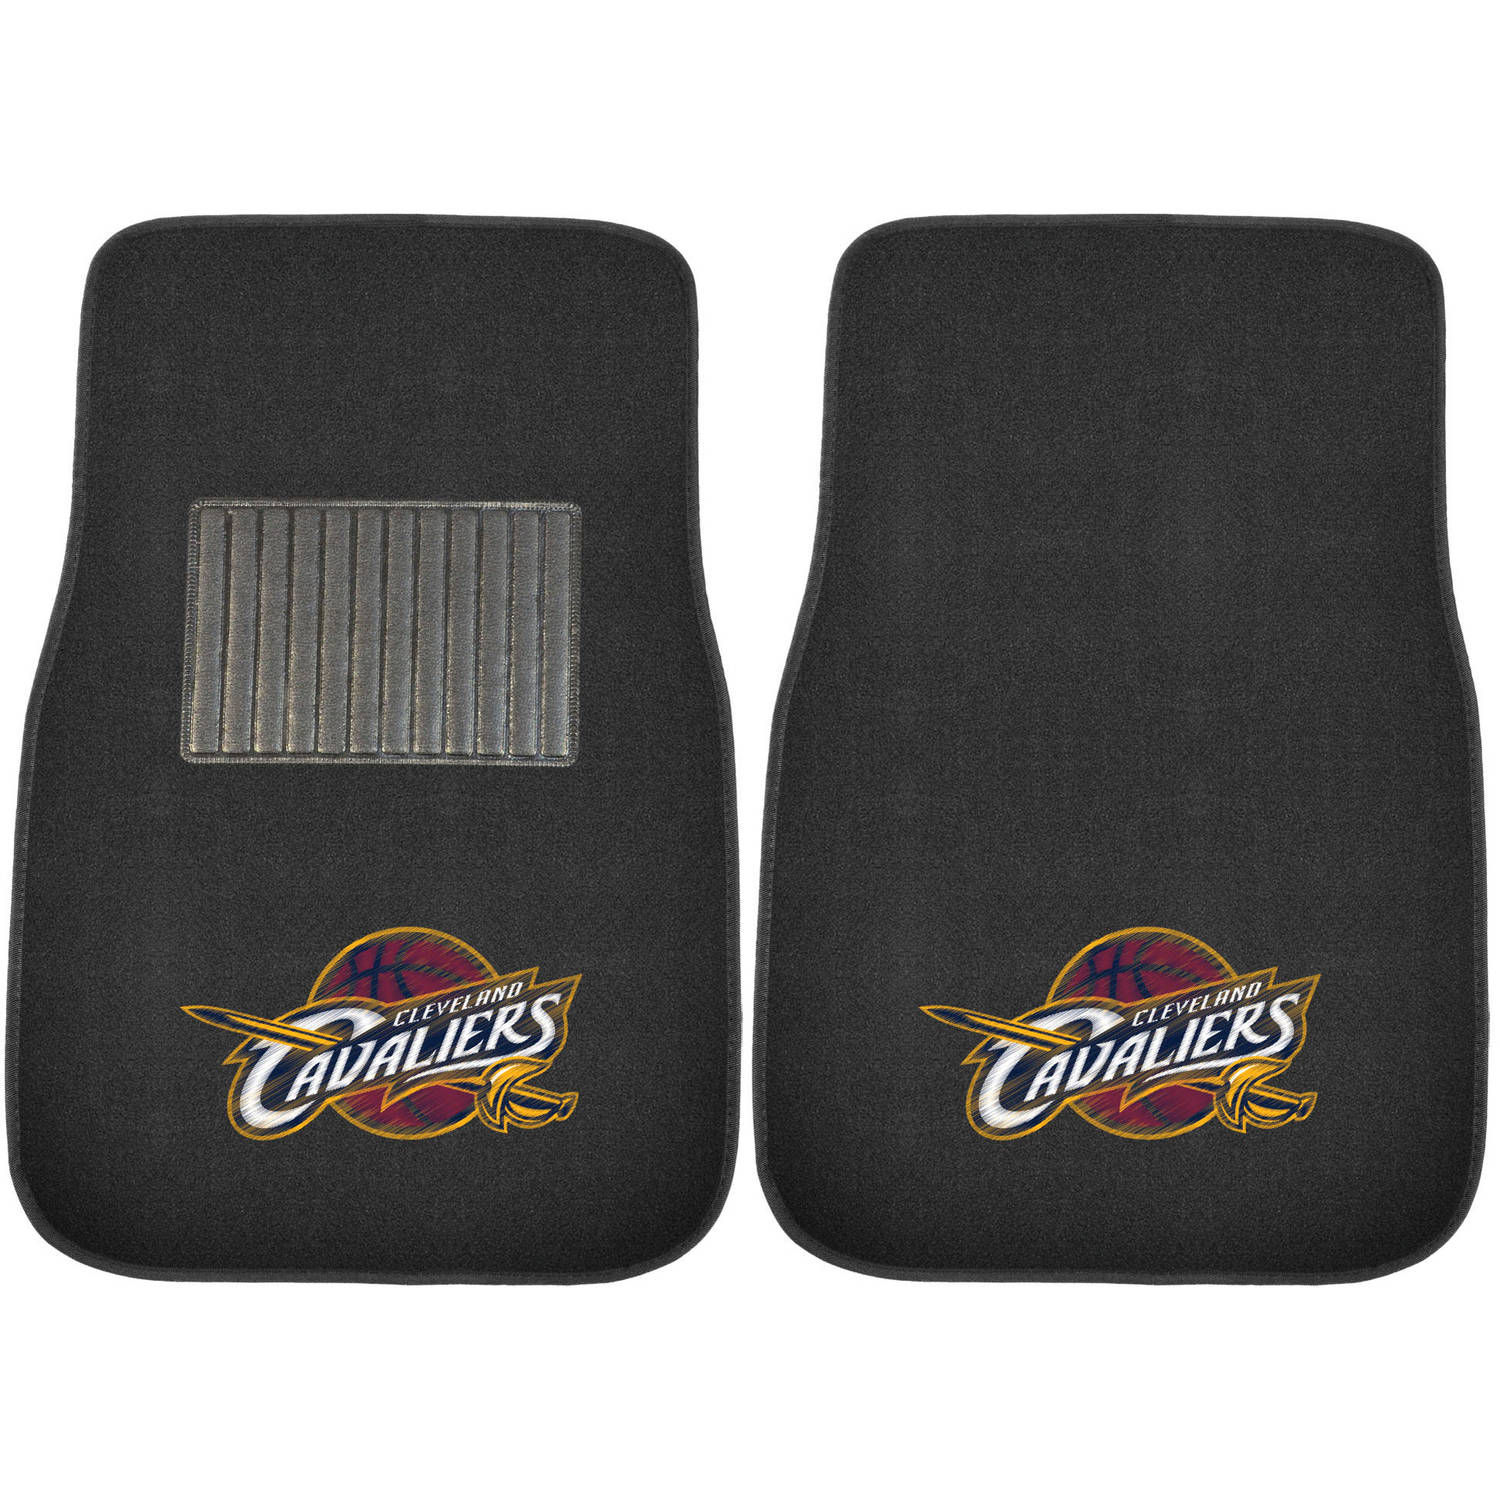 NBA Cleveland Cavaliers Embroidered Car Mats